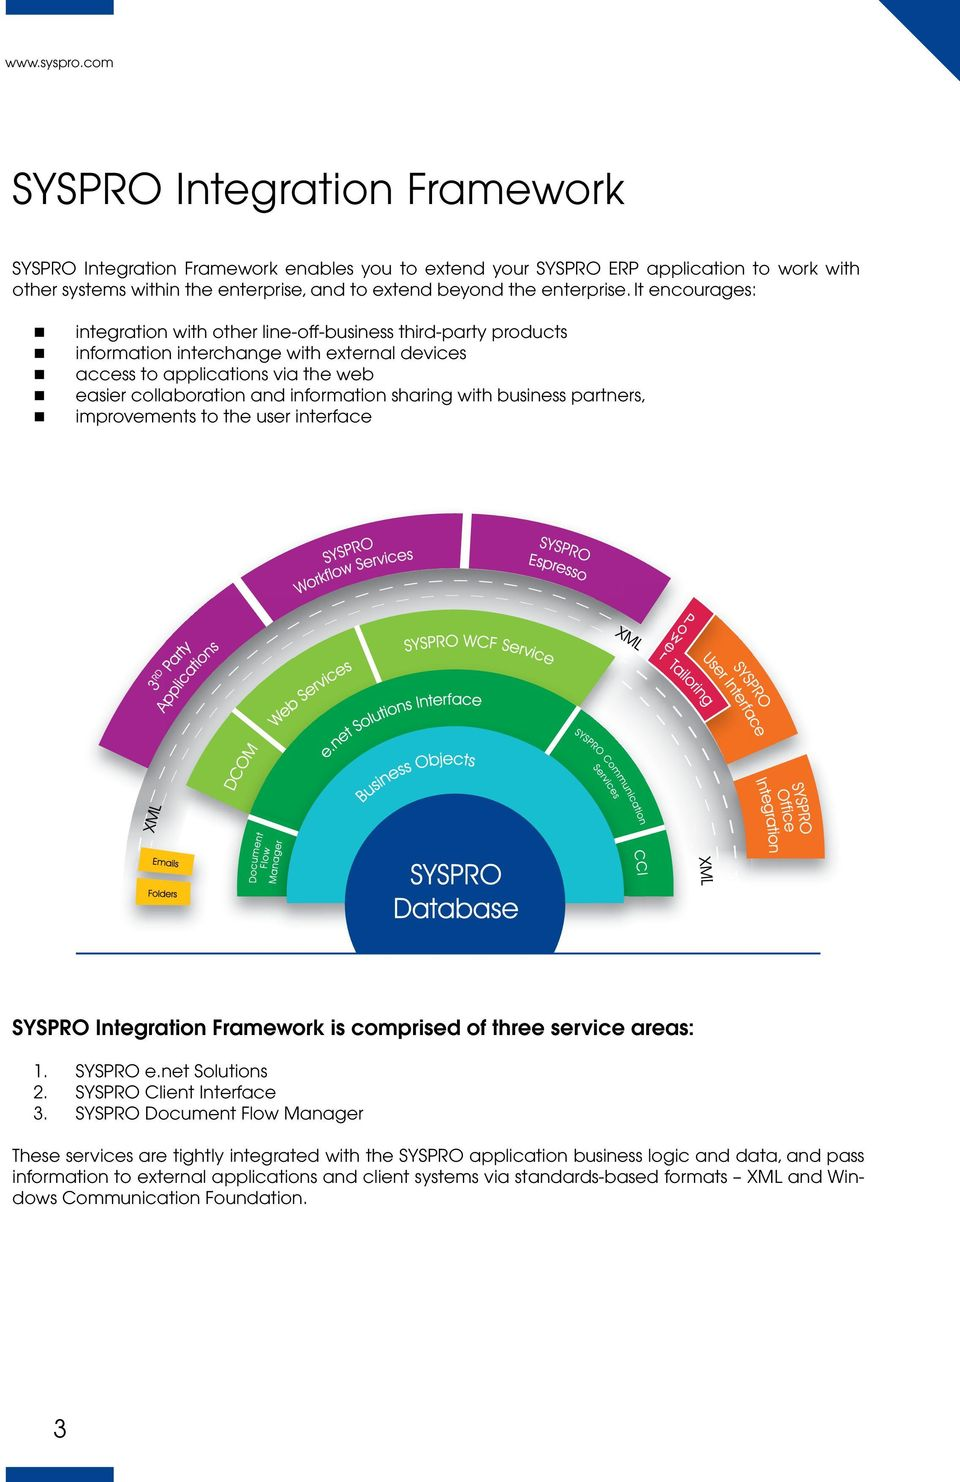 sharing with business partners, improvements to the user interface SYSPRO Integration Framework is comprised of three service areas: 1. SYSPRO e.net Solutions 2. SYSPRO Client Interface 3.